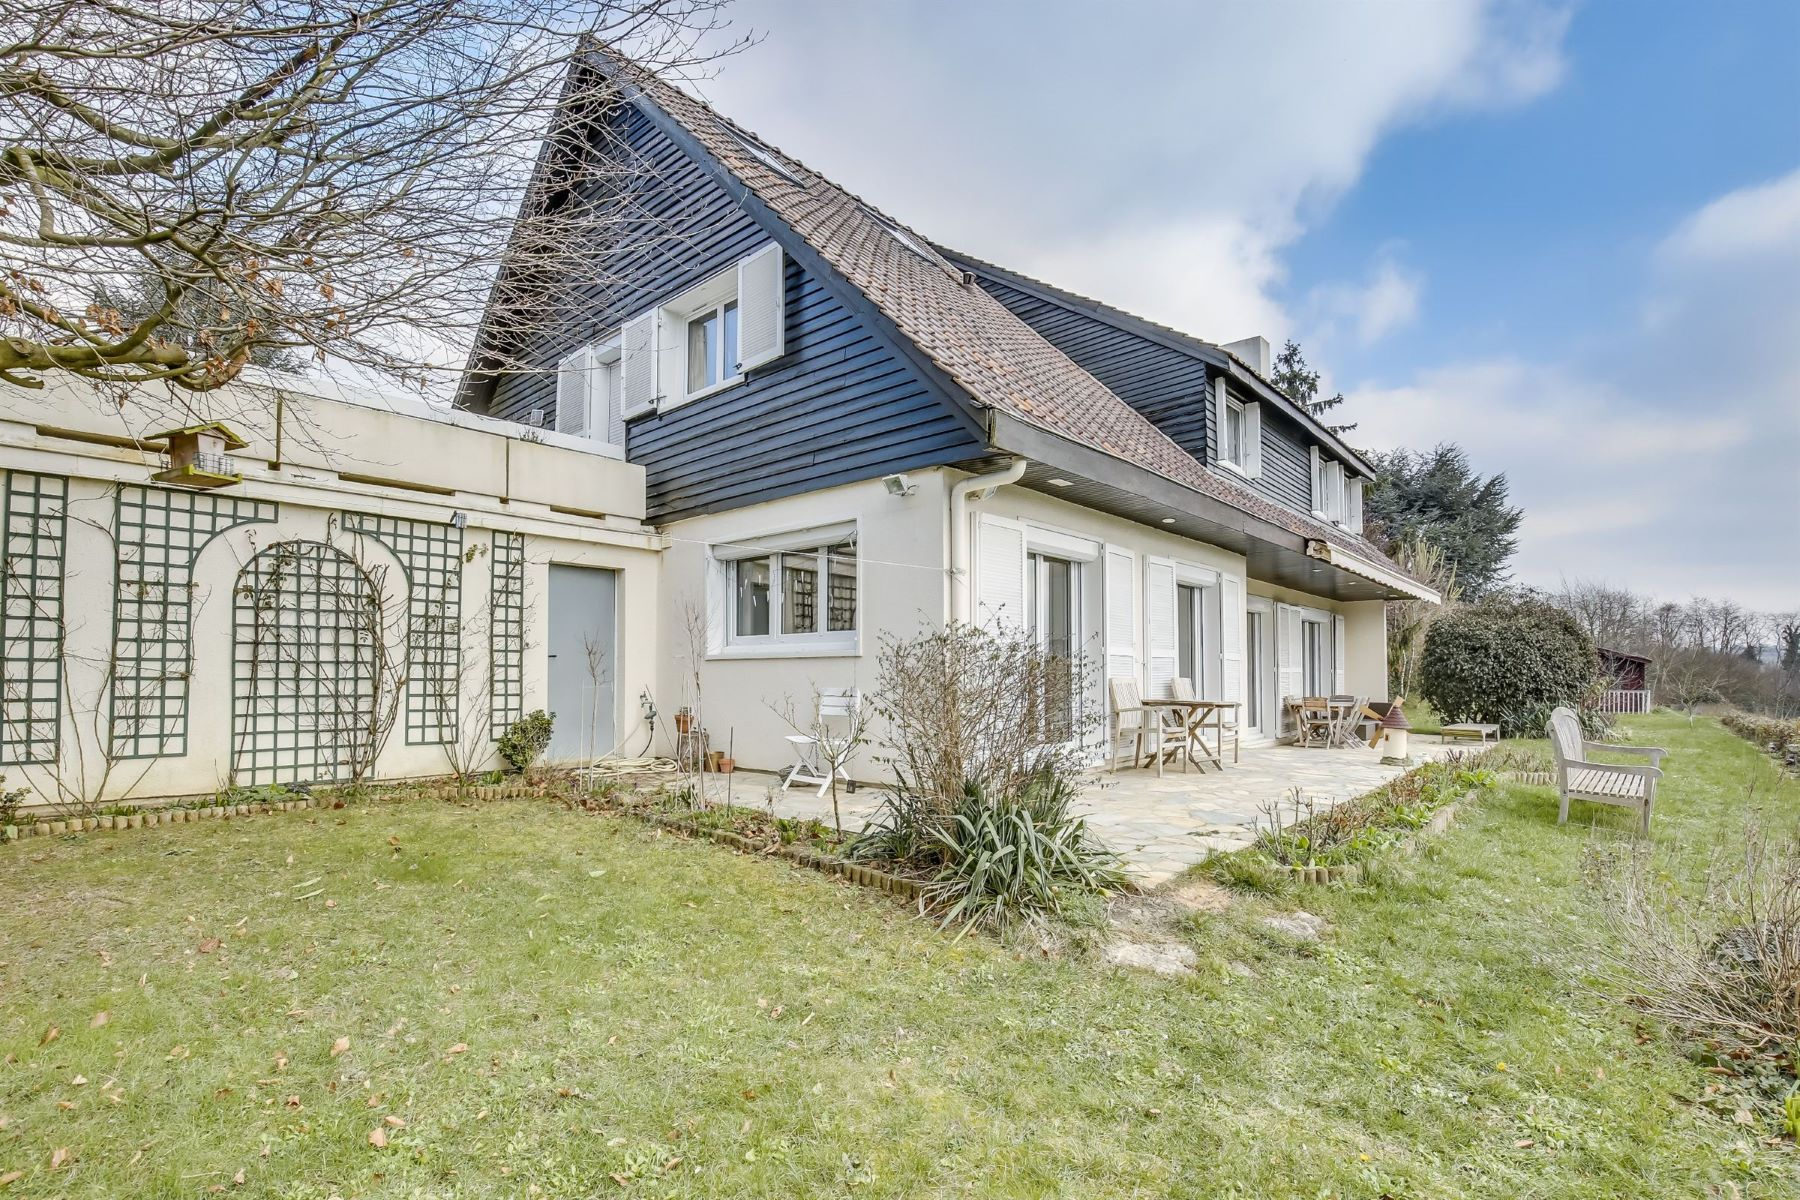 Single Family Home for Sale at Beautiful 315 sq.m property unobstructed view for sale Chavenay Le Vallon Other Ile-De-France, Ile-De-France, 78860 France